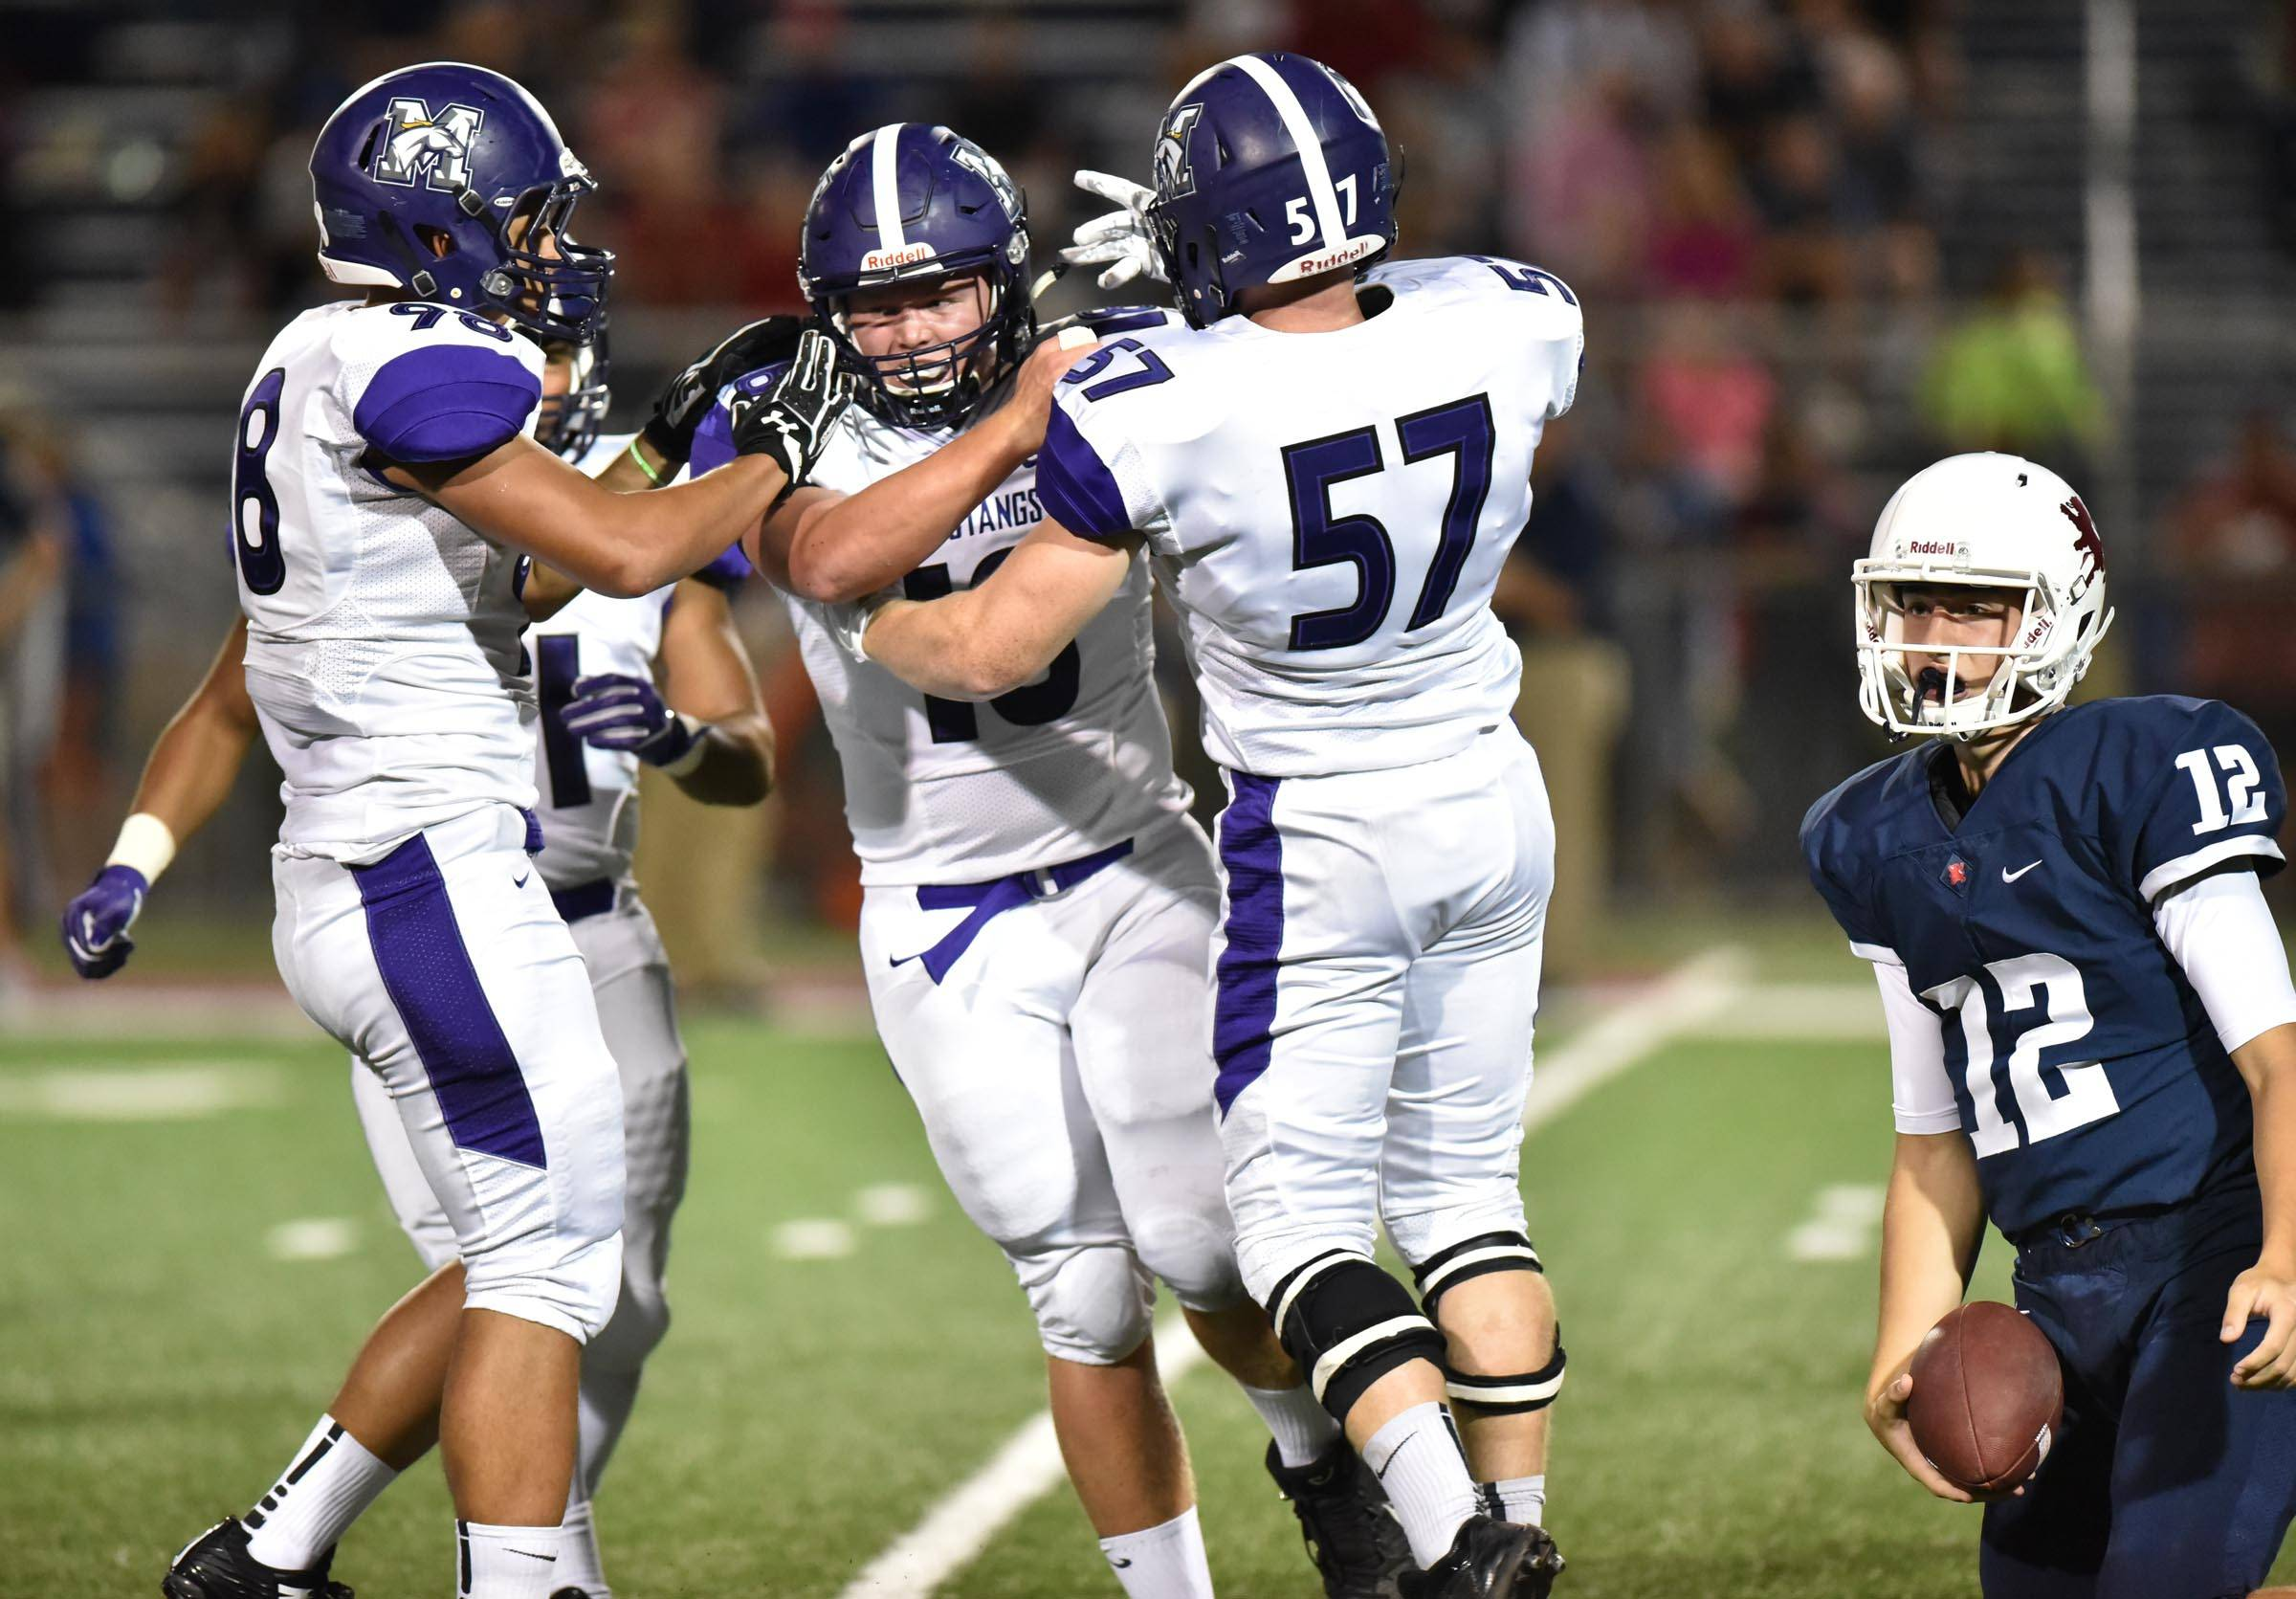 Rolling Meadows' Justin Thompson is met by teammates Luis Robledo and Brian Jacks, right, after his sack of St. Viator quarterback Tom Majerus in the first half Friday in Arlington Heights.